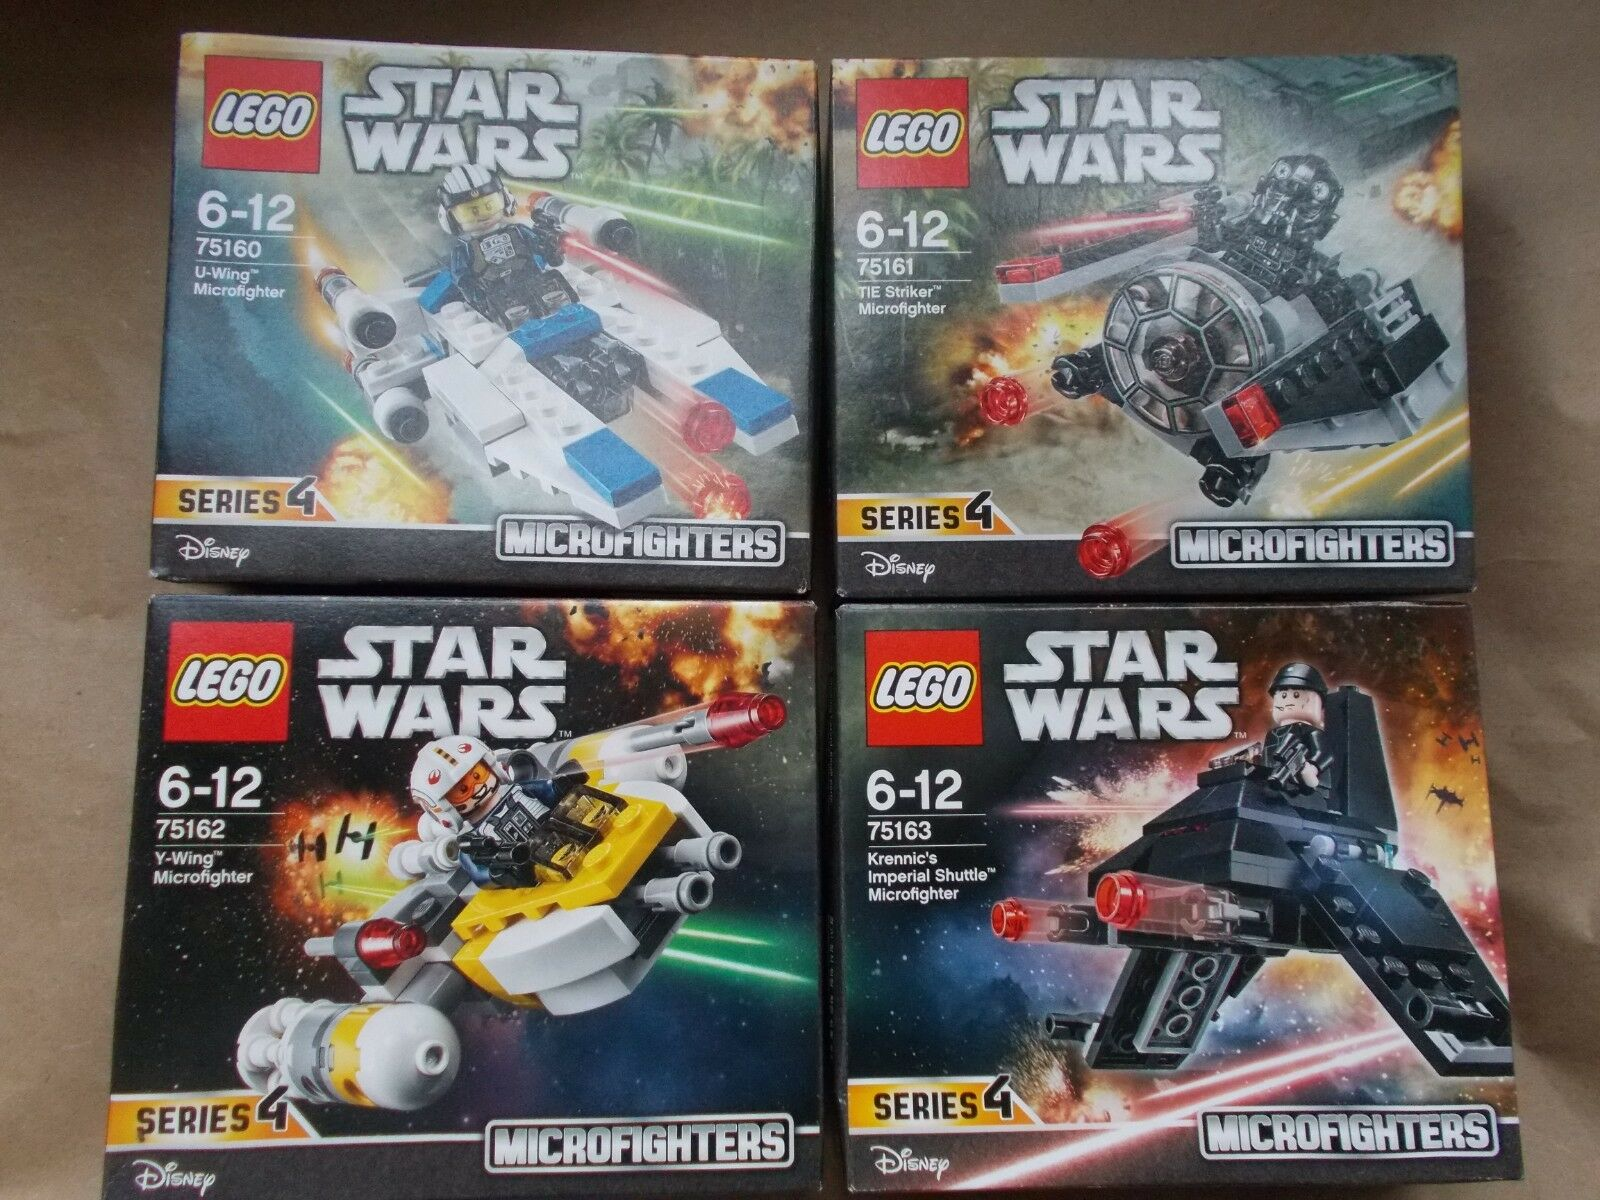 NEW LEGO STAR WARS FULL SET OF 4 MICRO FIGHTERS SERIES 4 75160 75161 75162 75163